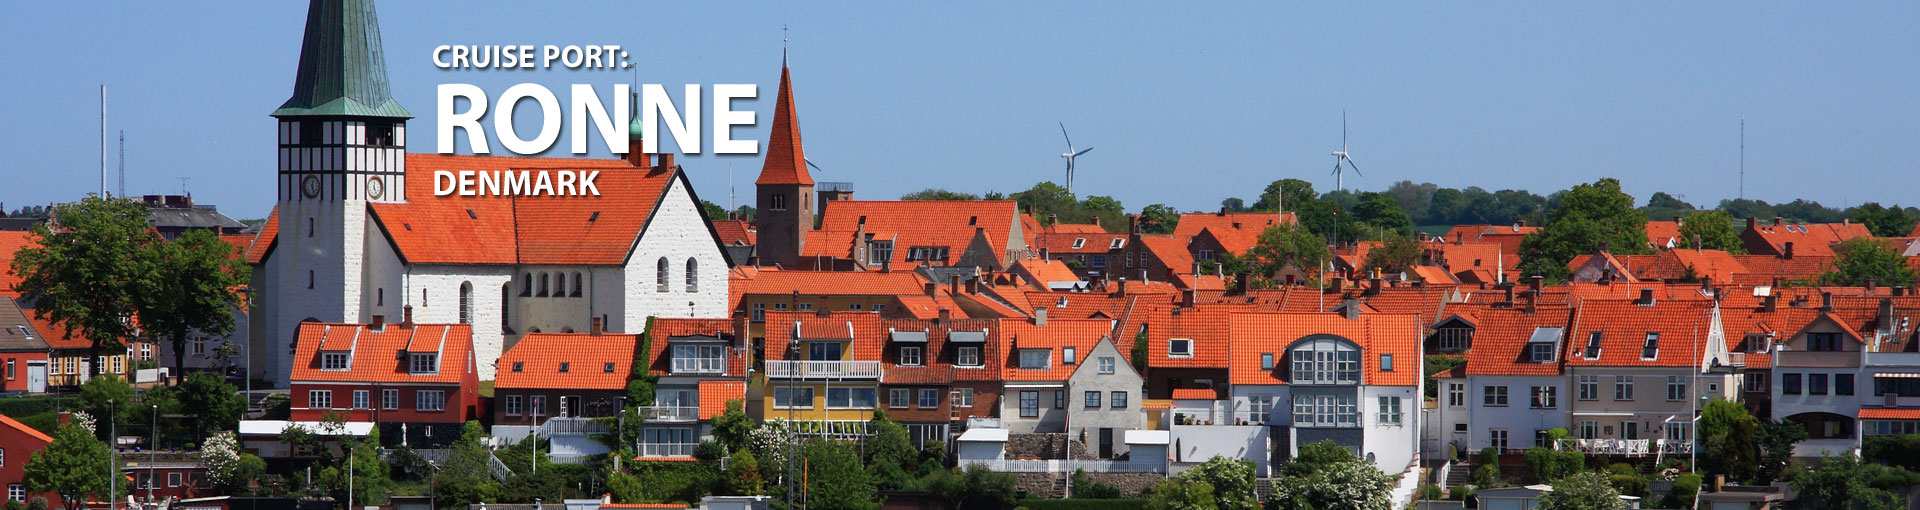 Cruises to Ronne, Denmark